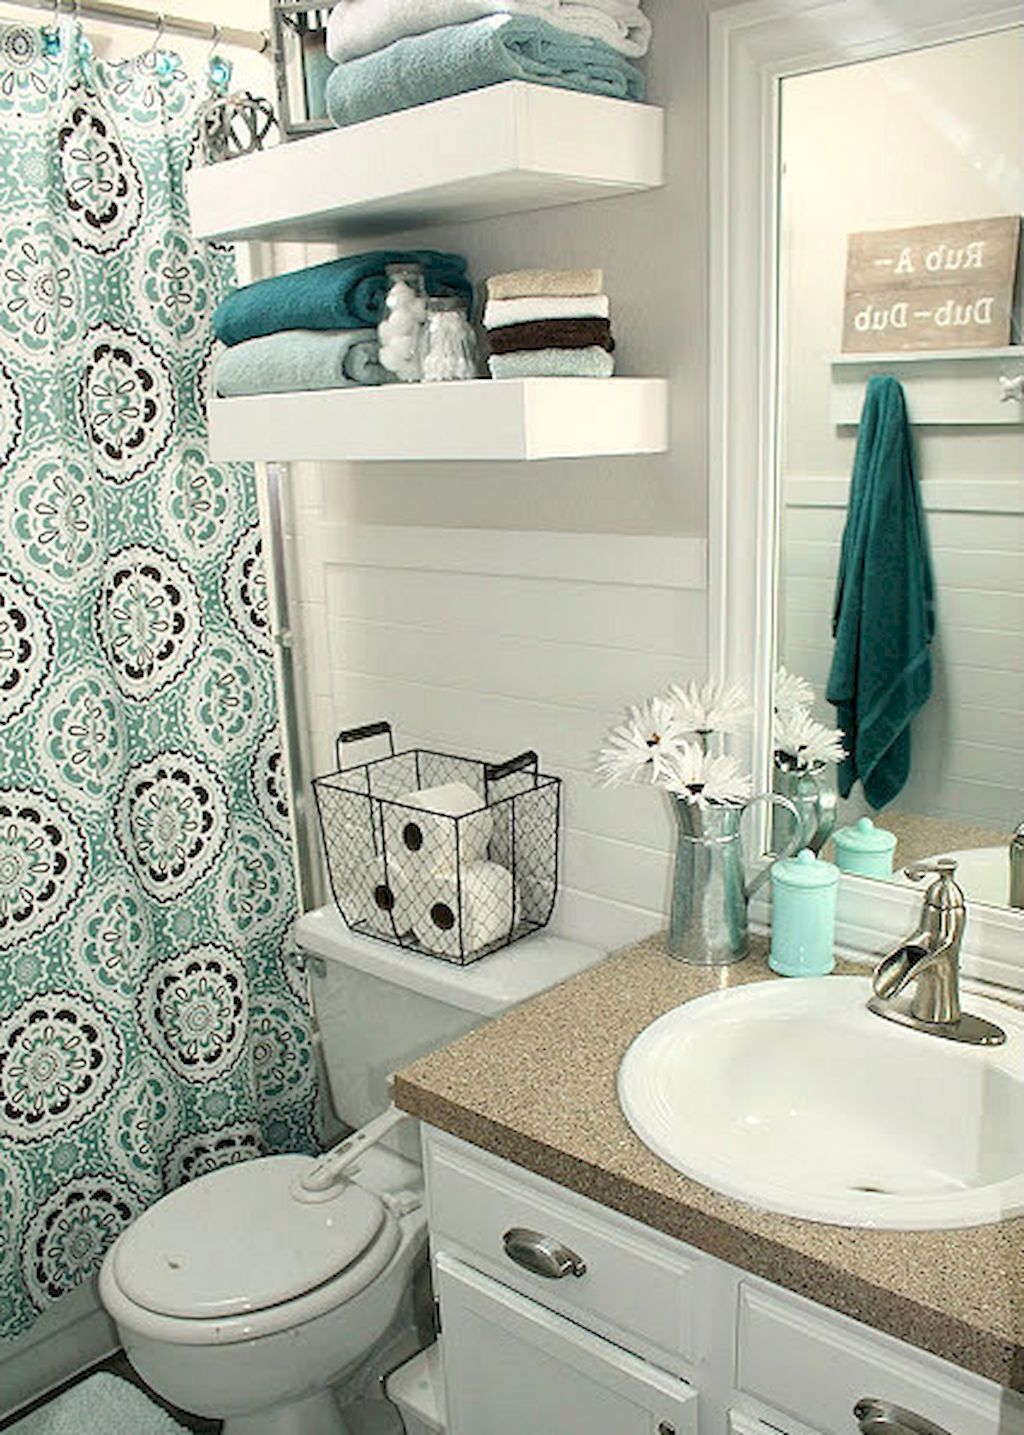 bathroom decorating ideas on a budget. Exellent Decorating Gorgeous 30 DIY Small Apartment Decorating Ideas On A Budget  Httpsdecoremodelcom30diysmallapartmentdecoratingideasbudget To Bathroom On A E